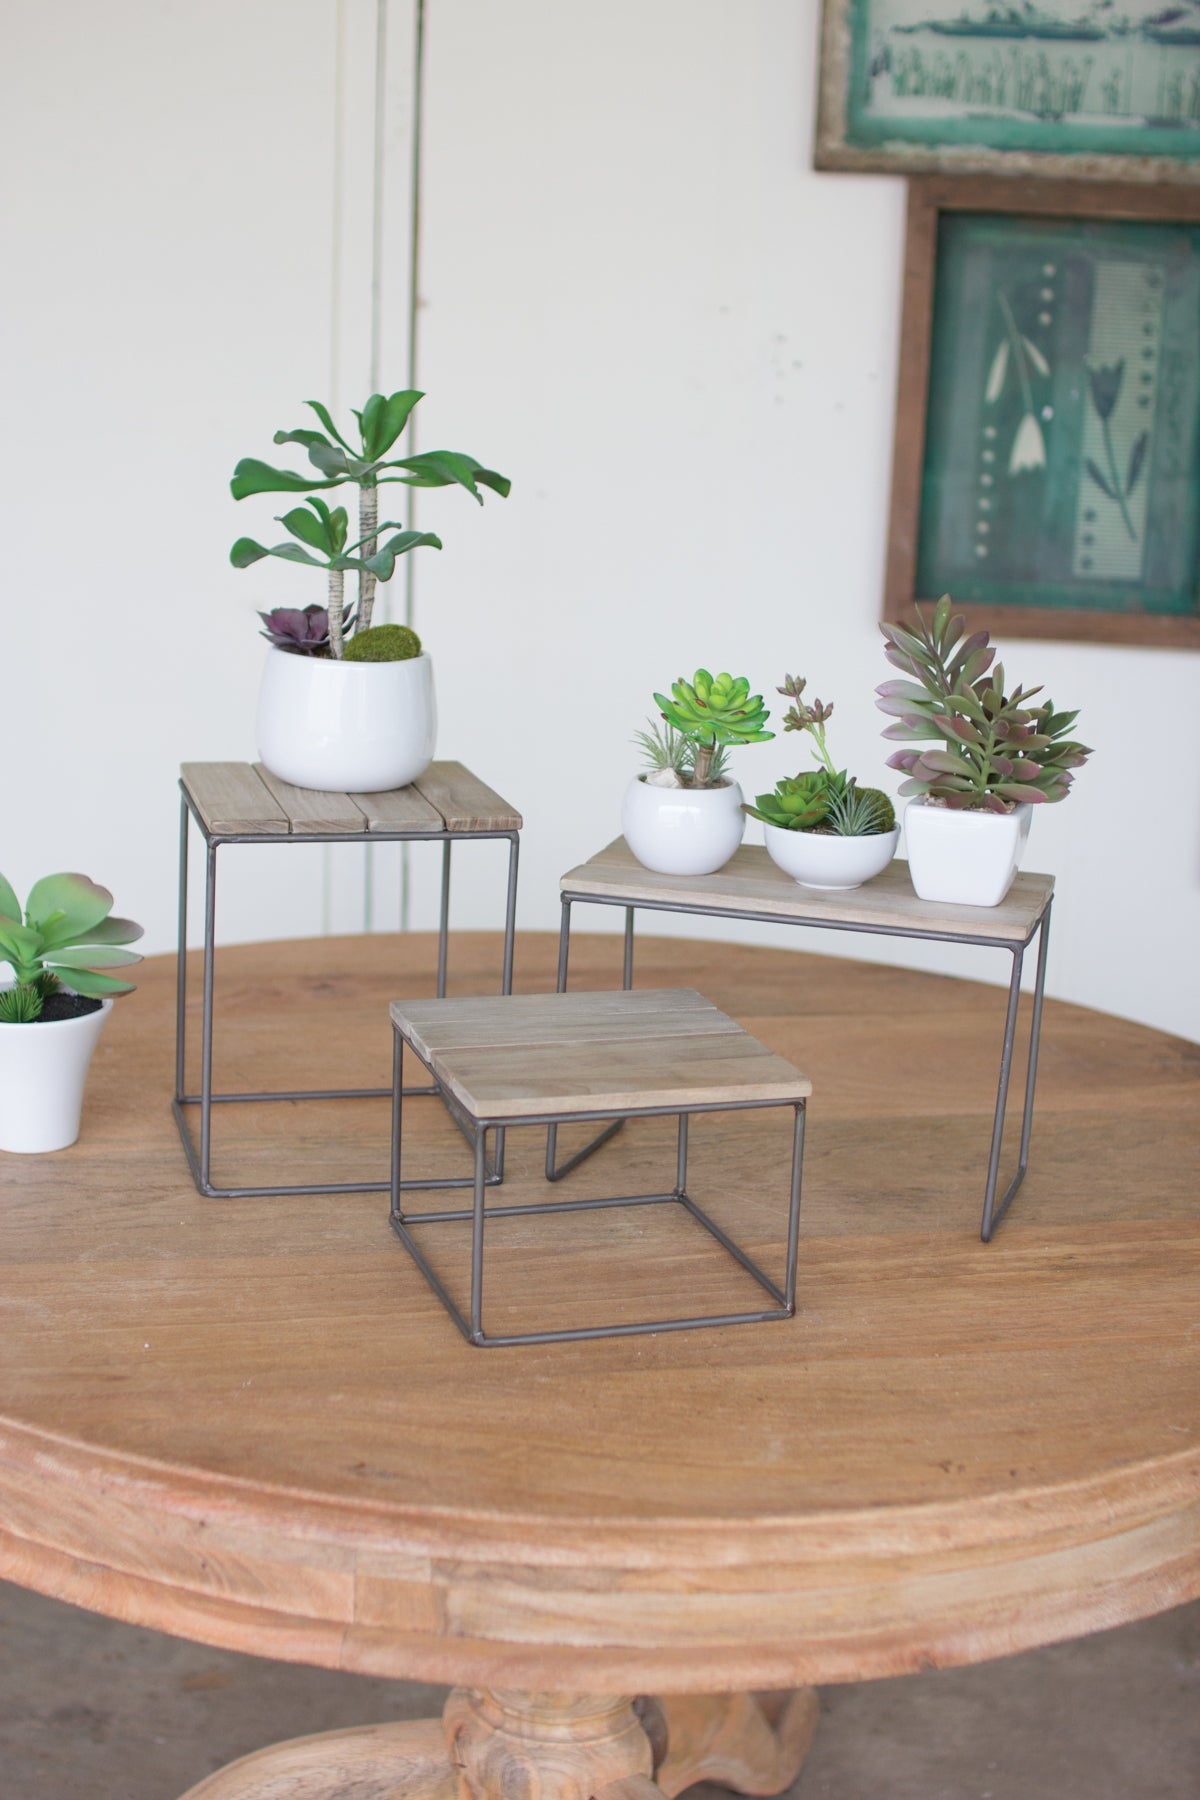 Wood and Metal Table Top Risers - Set of 3